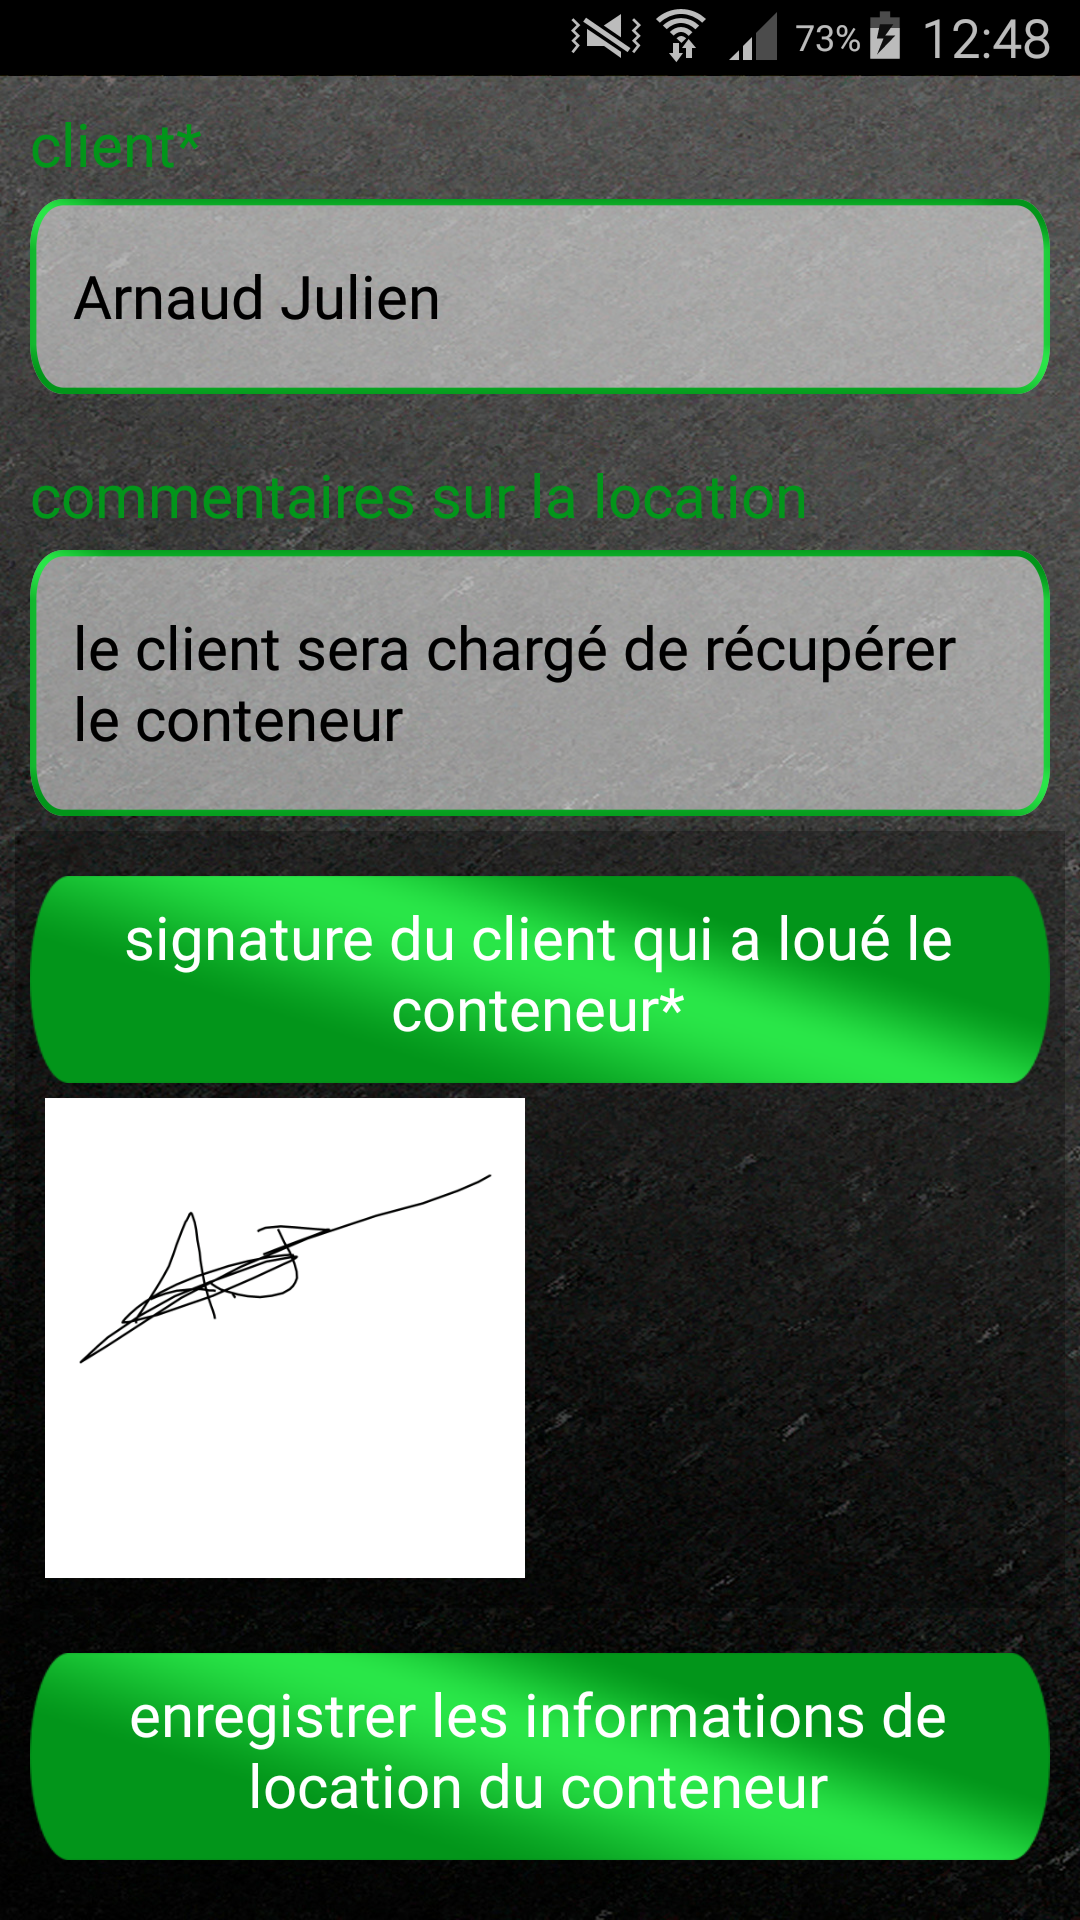 ginstr_app_containerHire_FR_4